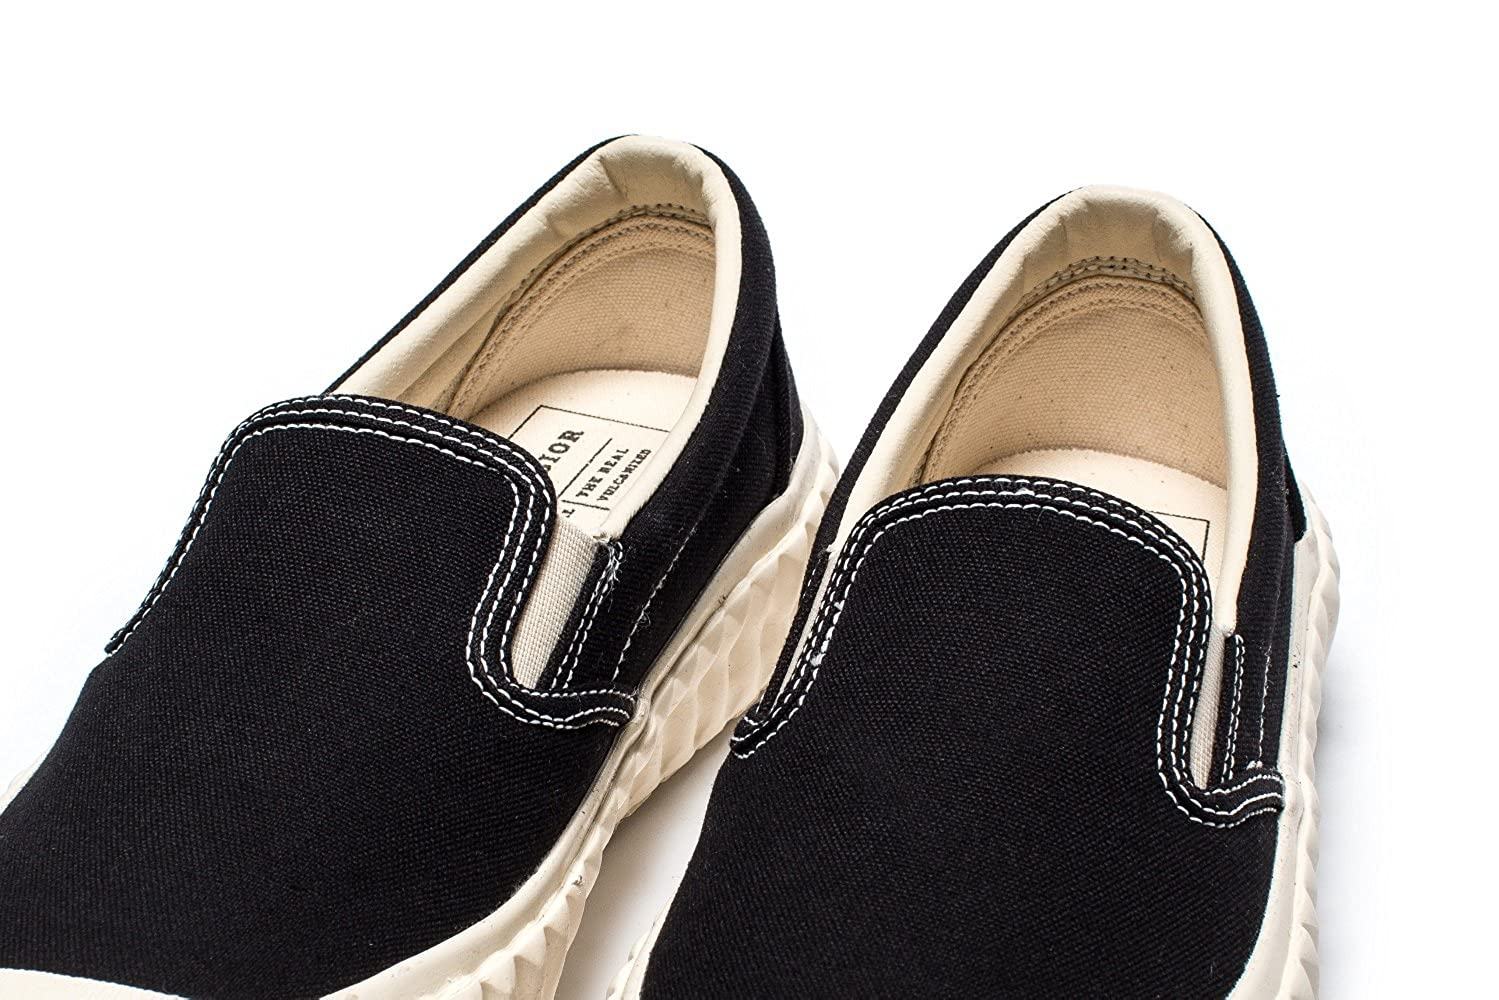 EXCELSIOR Unisex Classic Slip-on Vulcanized Fashion Sneakers